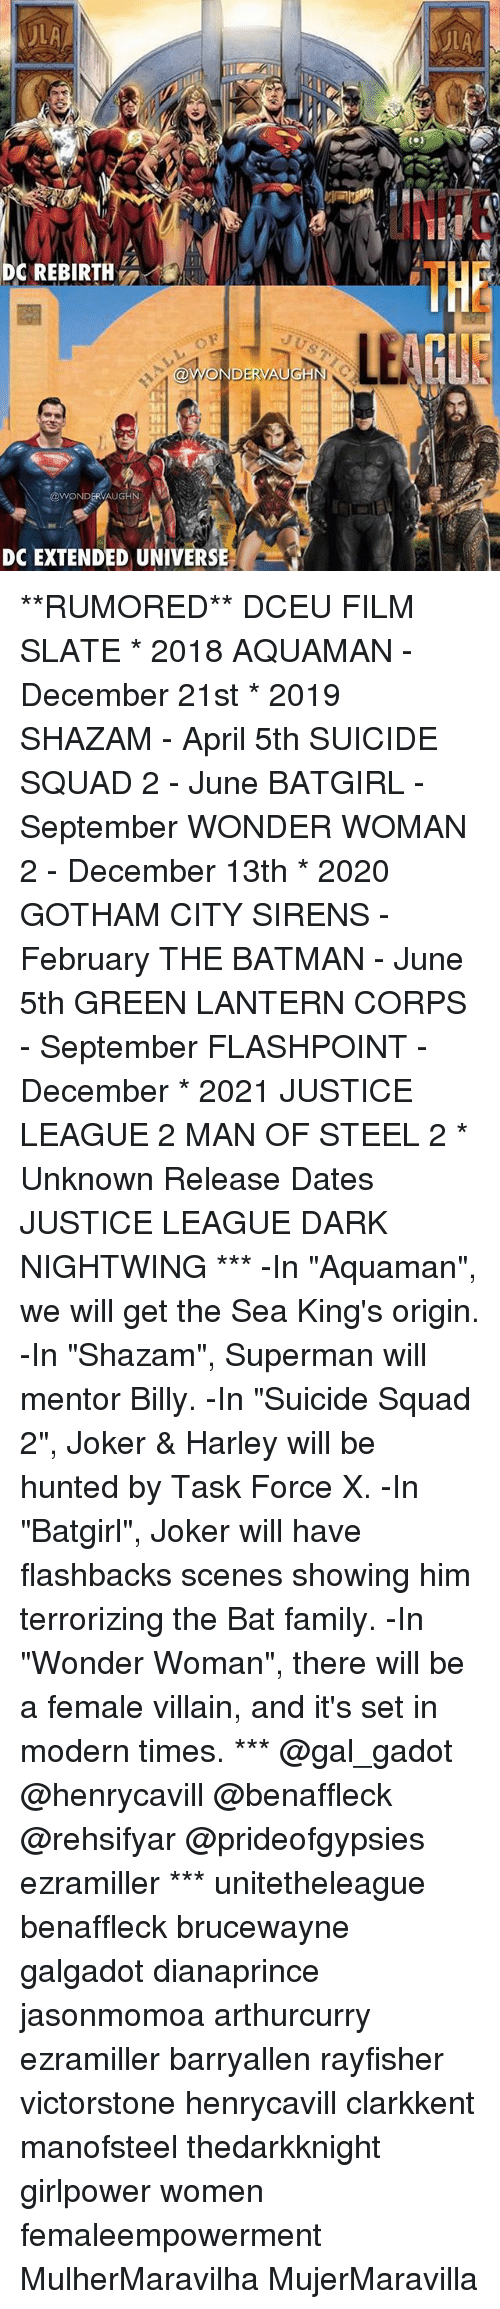 "Batman, Family, and Joker: DC REBIRTH  LE  OWONDERVAUGH  ND  DC EXTENDED UNIVERSE **RUMORED** DCEU FILM SLATE * 2018 AQUAMAN - December 21st * 2019 SHAZAM - April 5th SUICIDE SQUAD 2 - June BATGIRL - September WONDER WOMAN 2 - December 13th * 2020 GOTHAM CITY SIRENS - February THE BATMAN - June 5th GREEN LANTERN CORPS - September FLASHPOINT - December * 2021 JUSTICE LEAGUE 2 MAN OF STEEL 2 * Unknown Release Dates JUSTICE LEAGUE DARK NIGHTWING *** -In ""Aquaman"", we will get the Sea King's origin. -In ""Shazam"", Superman will mentor Billy. -In ""Suicide Squad 2"", Joker & Harley will be hunted by Task Force X. -In ""Batgirl"", Joker will have flashbacks scenes showing him terrorizing the Bat family. -In ""Wonder Woman"", there will be a female villain, and it's set in modern times. *** @gal_gadot @henrycavill @benaffleck @rehsifyar @prideofgypsies ezramiller *** unitetheleague benaffleck brucewayne galgadot dianaprince jasonmomoa arthurcurry ezramiller barryallen rayfisher victorstone henrycavill clarkkent manofsteel thedarkknight girlpower women femaleempowerment MulherMaravilha MujerMaravilla"